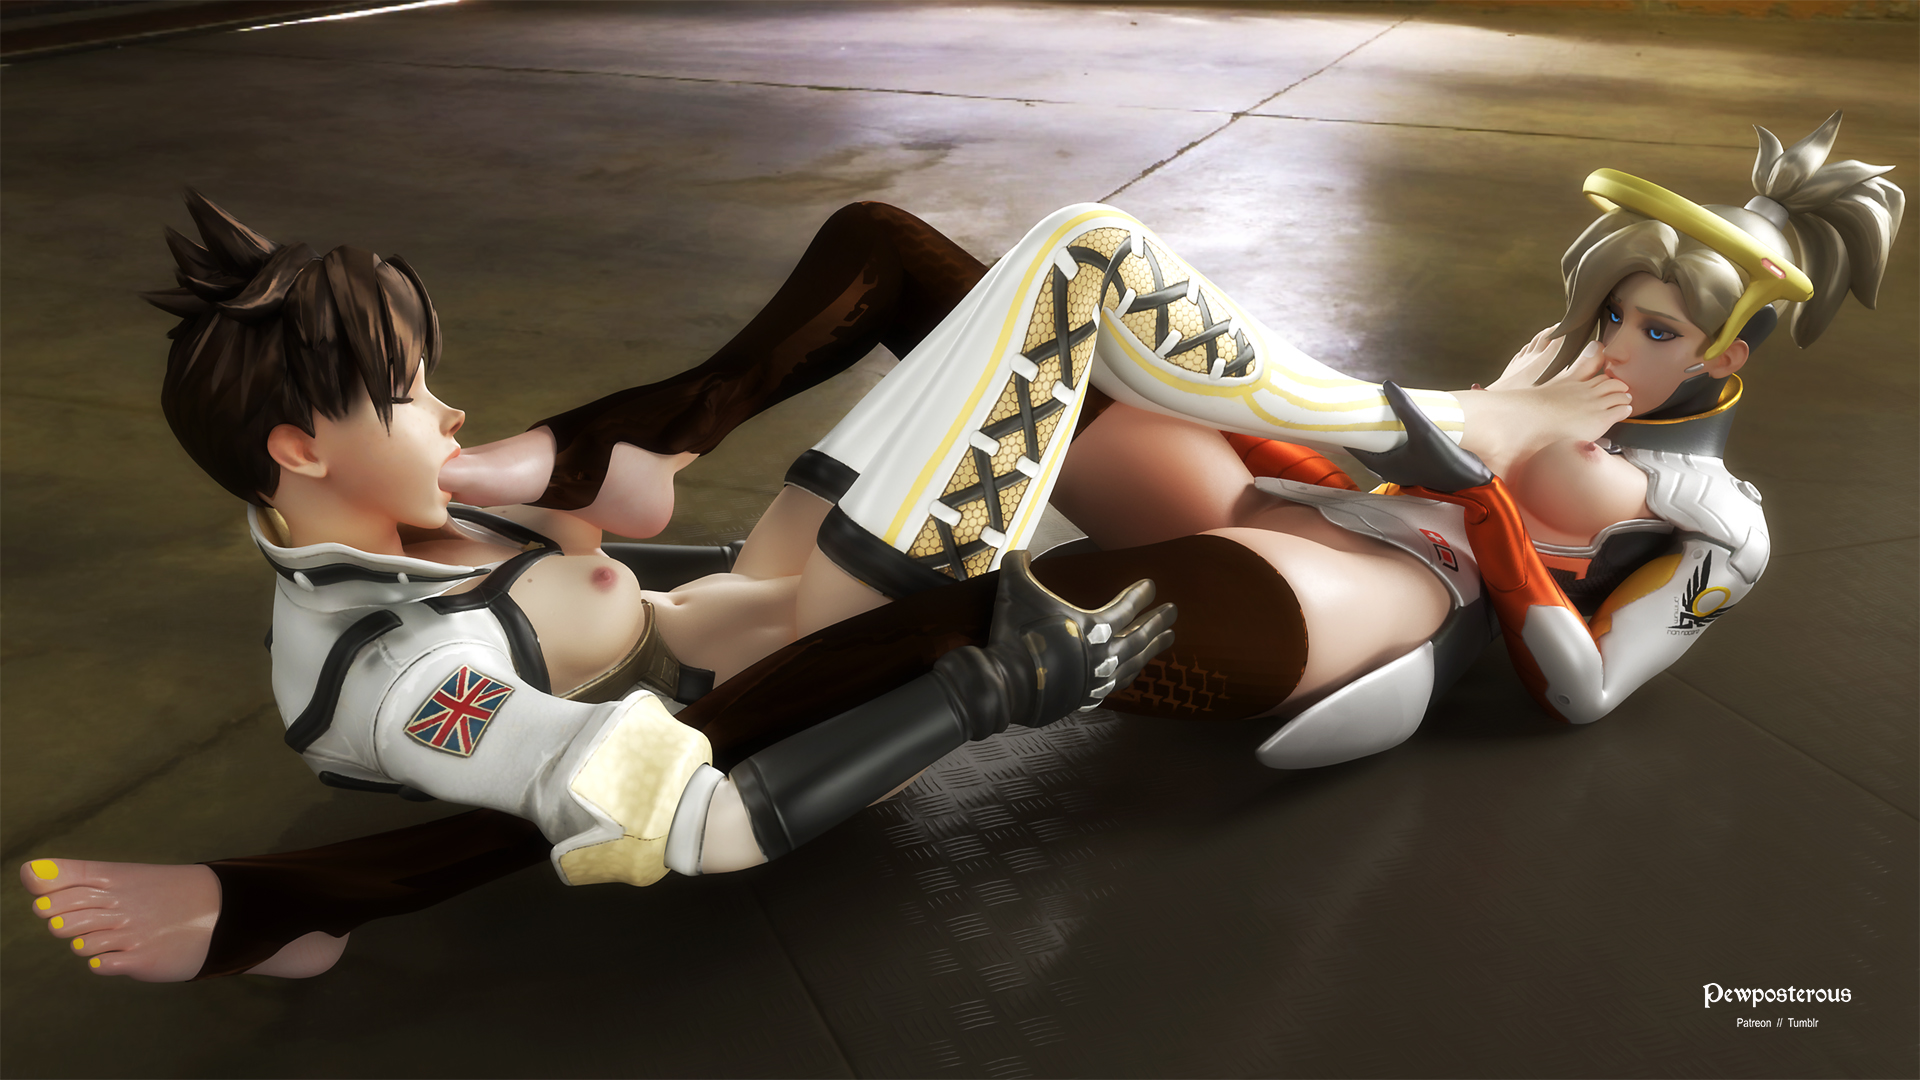 2305201 - Mercy Overlook Tracer blender pewposterous